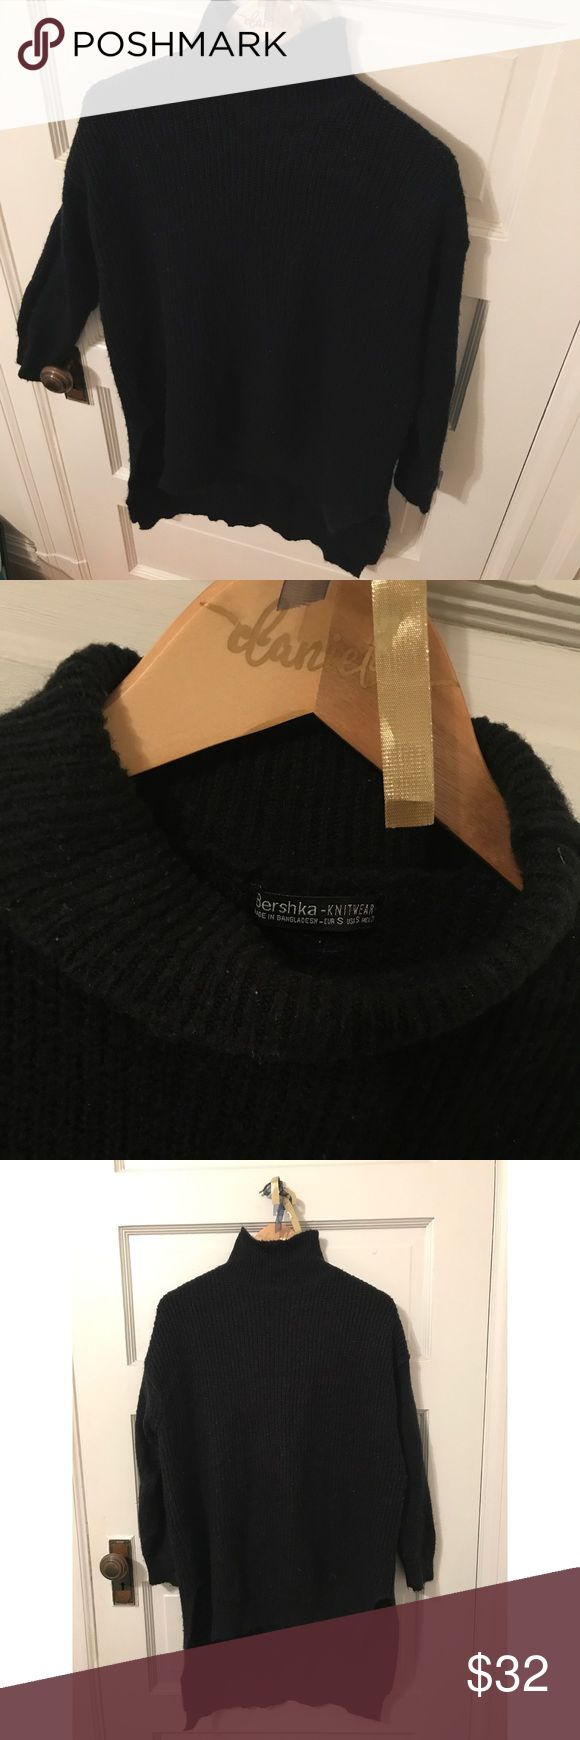 Black Sweater Turtle neck, high low sweater. Comes approximately to mid thigh in front and just above knees in back. Very comfortable and easy to pair for fashionable outfits. Gently worn, in great condition. Bershka Sweaters Cowl & Turtlenecks